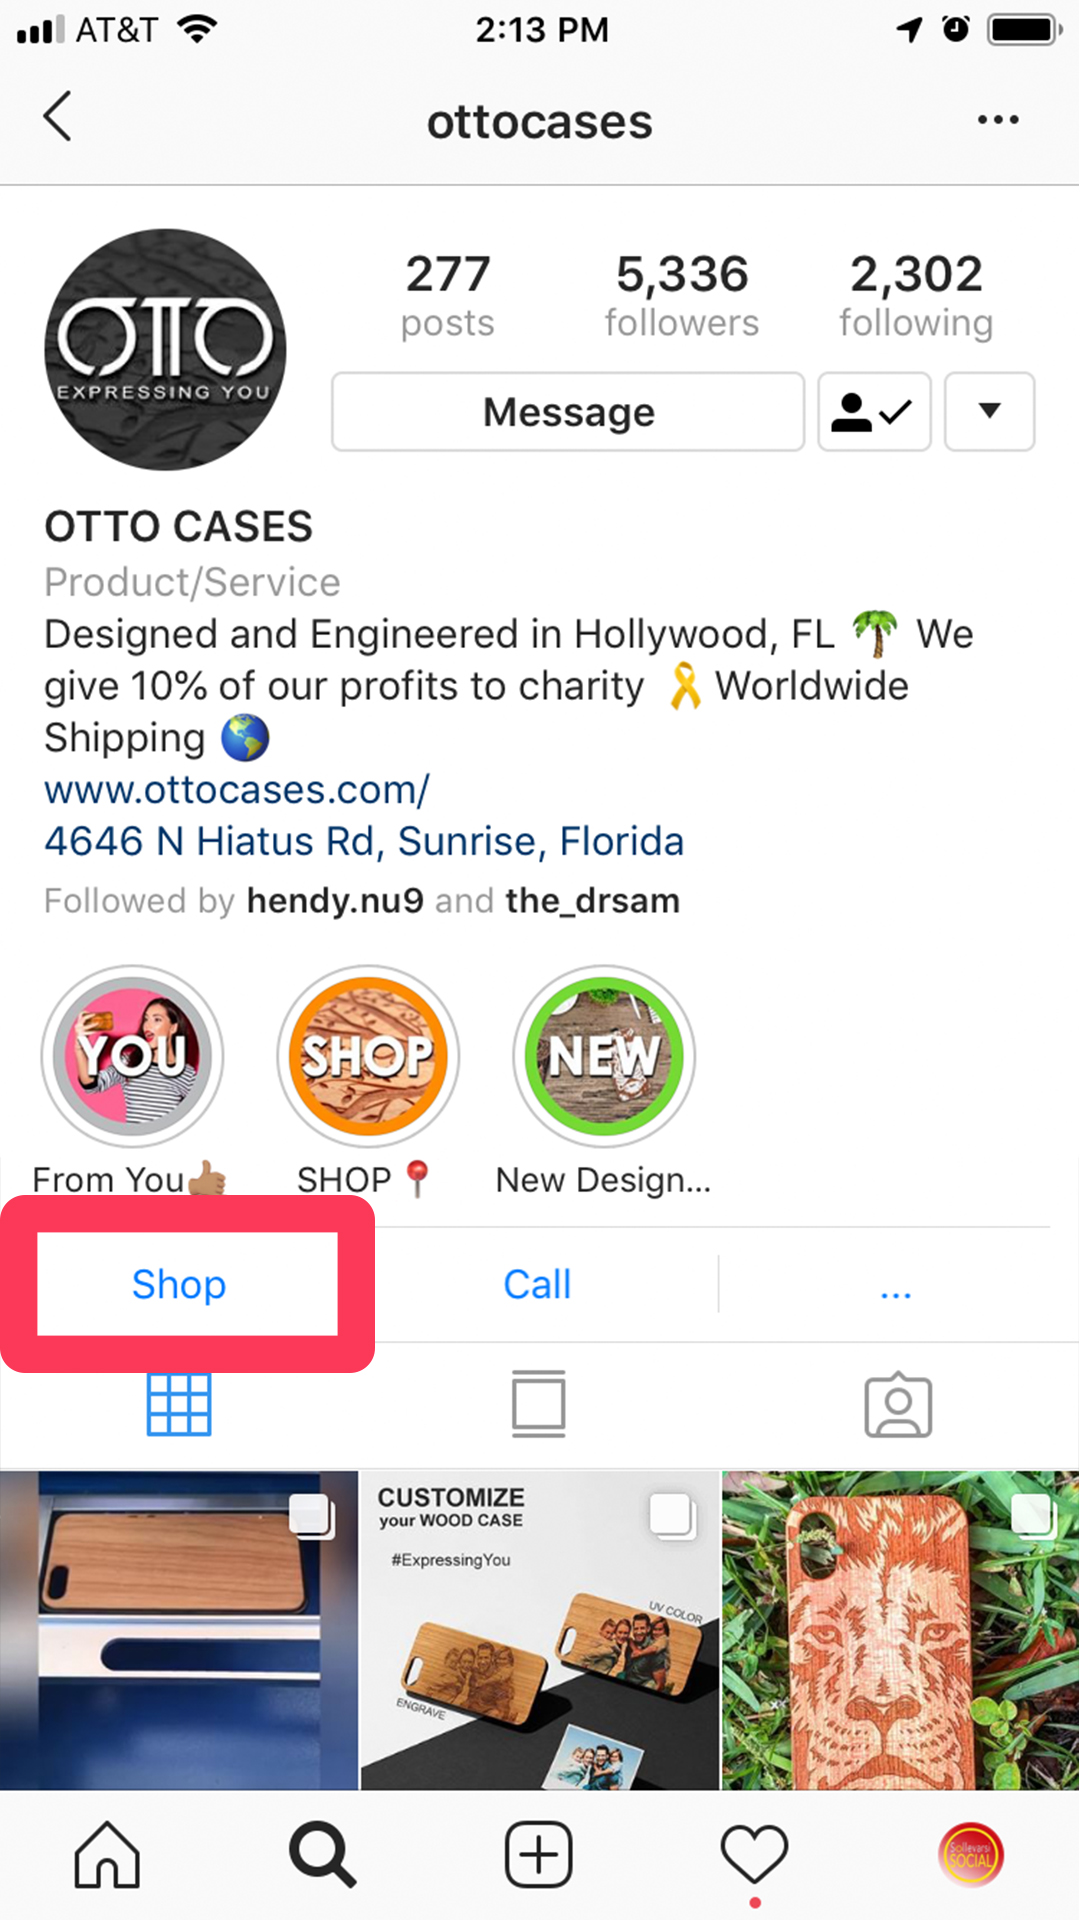 ottocases Shop tab-IG Stories.jpg